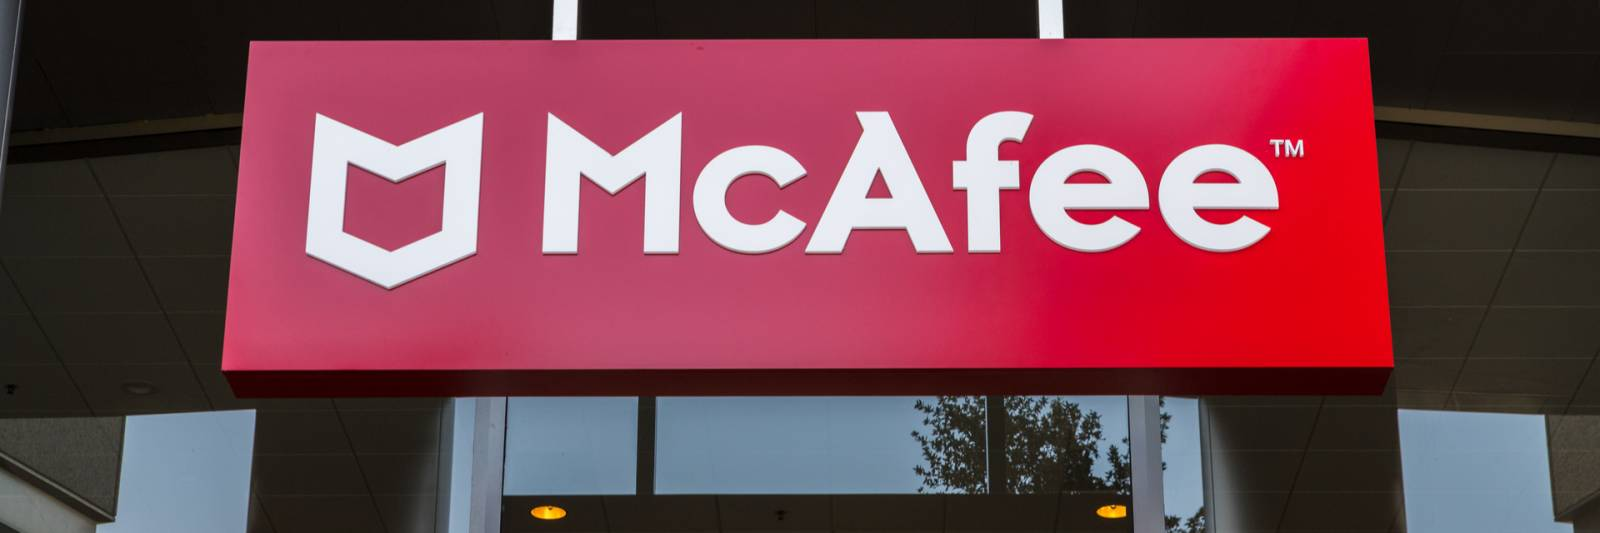 mcafee to sell enterprise business to stg for £2.8 billion